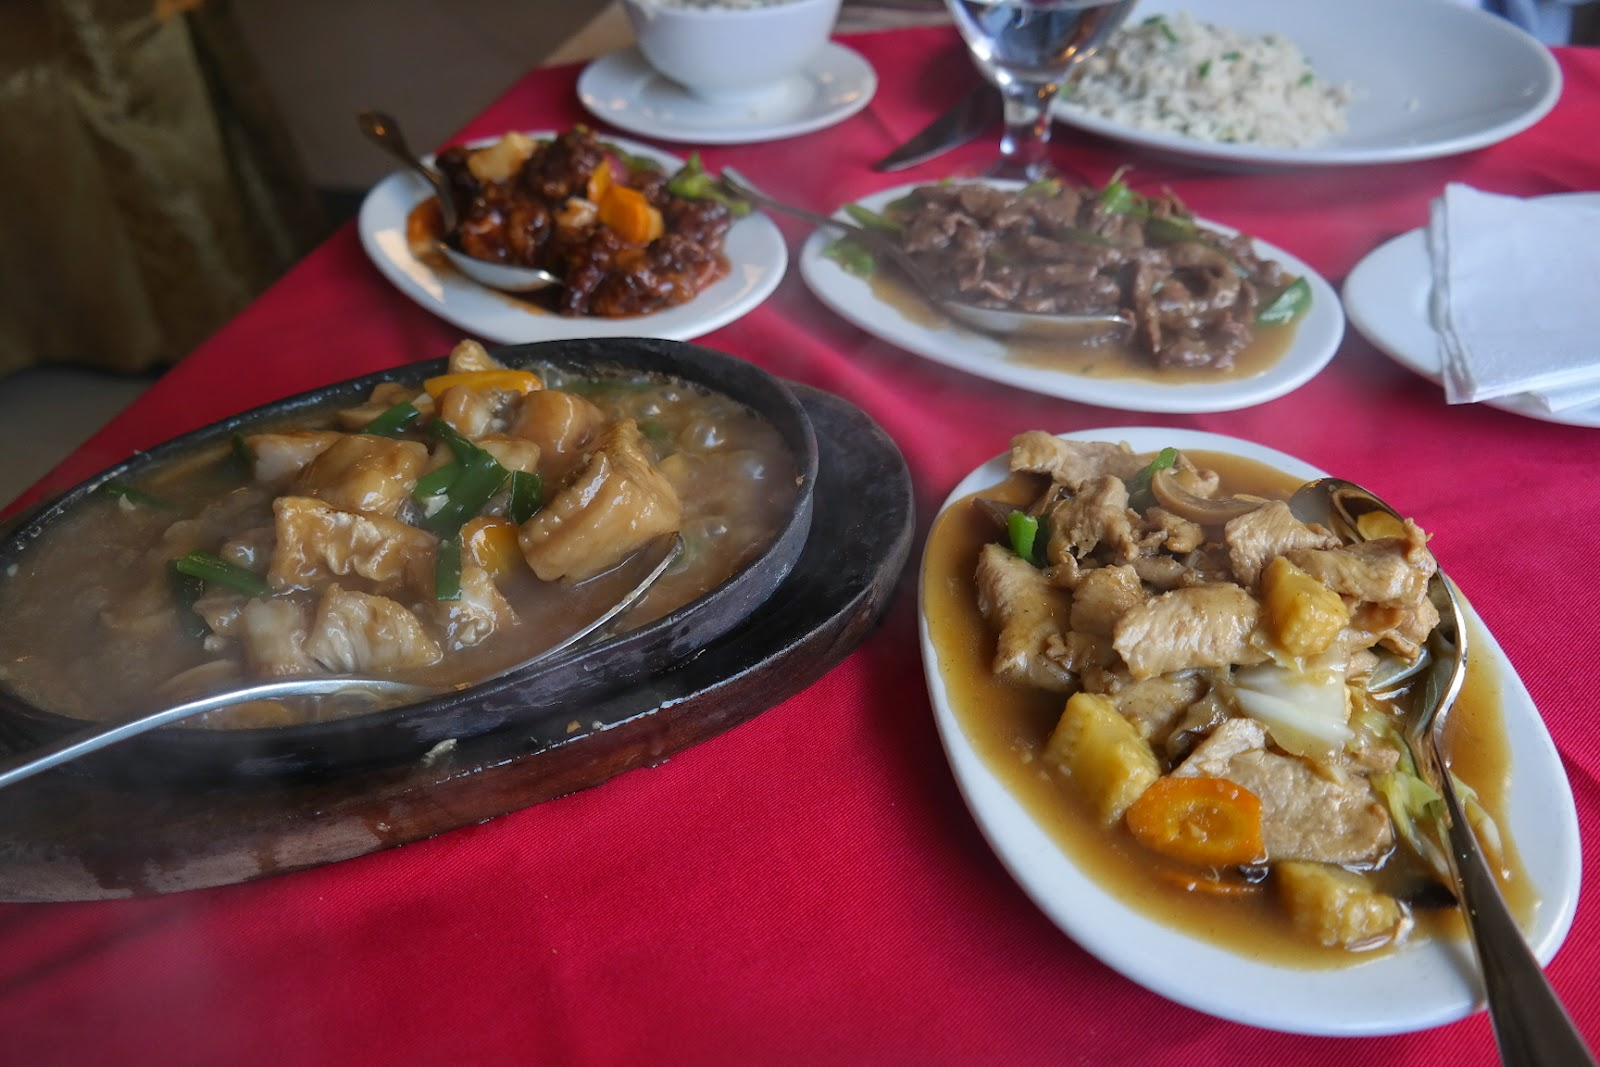 sweet and sour pork, chicken and vegetables, shredded beef